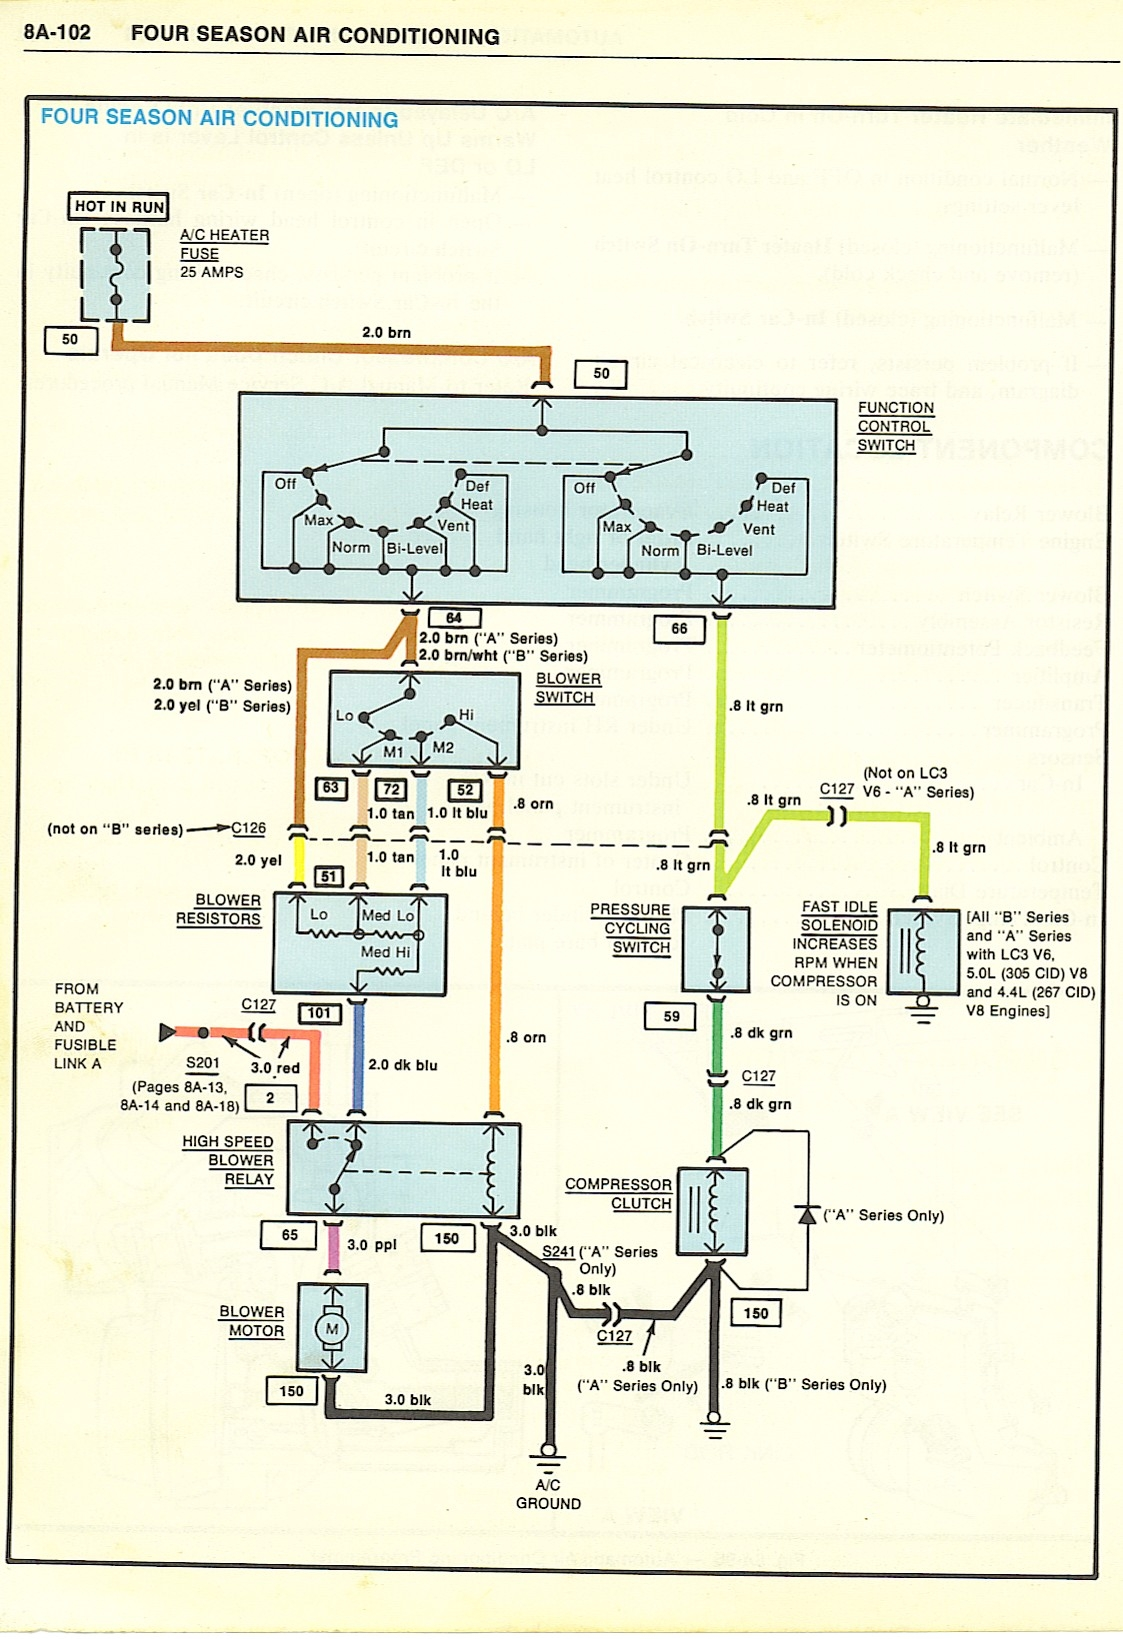 Chevelle 4 Sd Wiring Diagram | Wiring Diagram on chevelle wiring schematics, chevelle power window schematic, chevelle wiper motor wiring, chevelle vacuum diagram, 1970 chevelle fuse block diagram, chevelle fuse box, chevelle led brake lights, 1970 chevelle dash diagram, chevelle engine wiring diagrams,